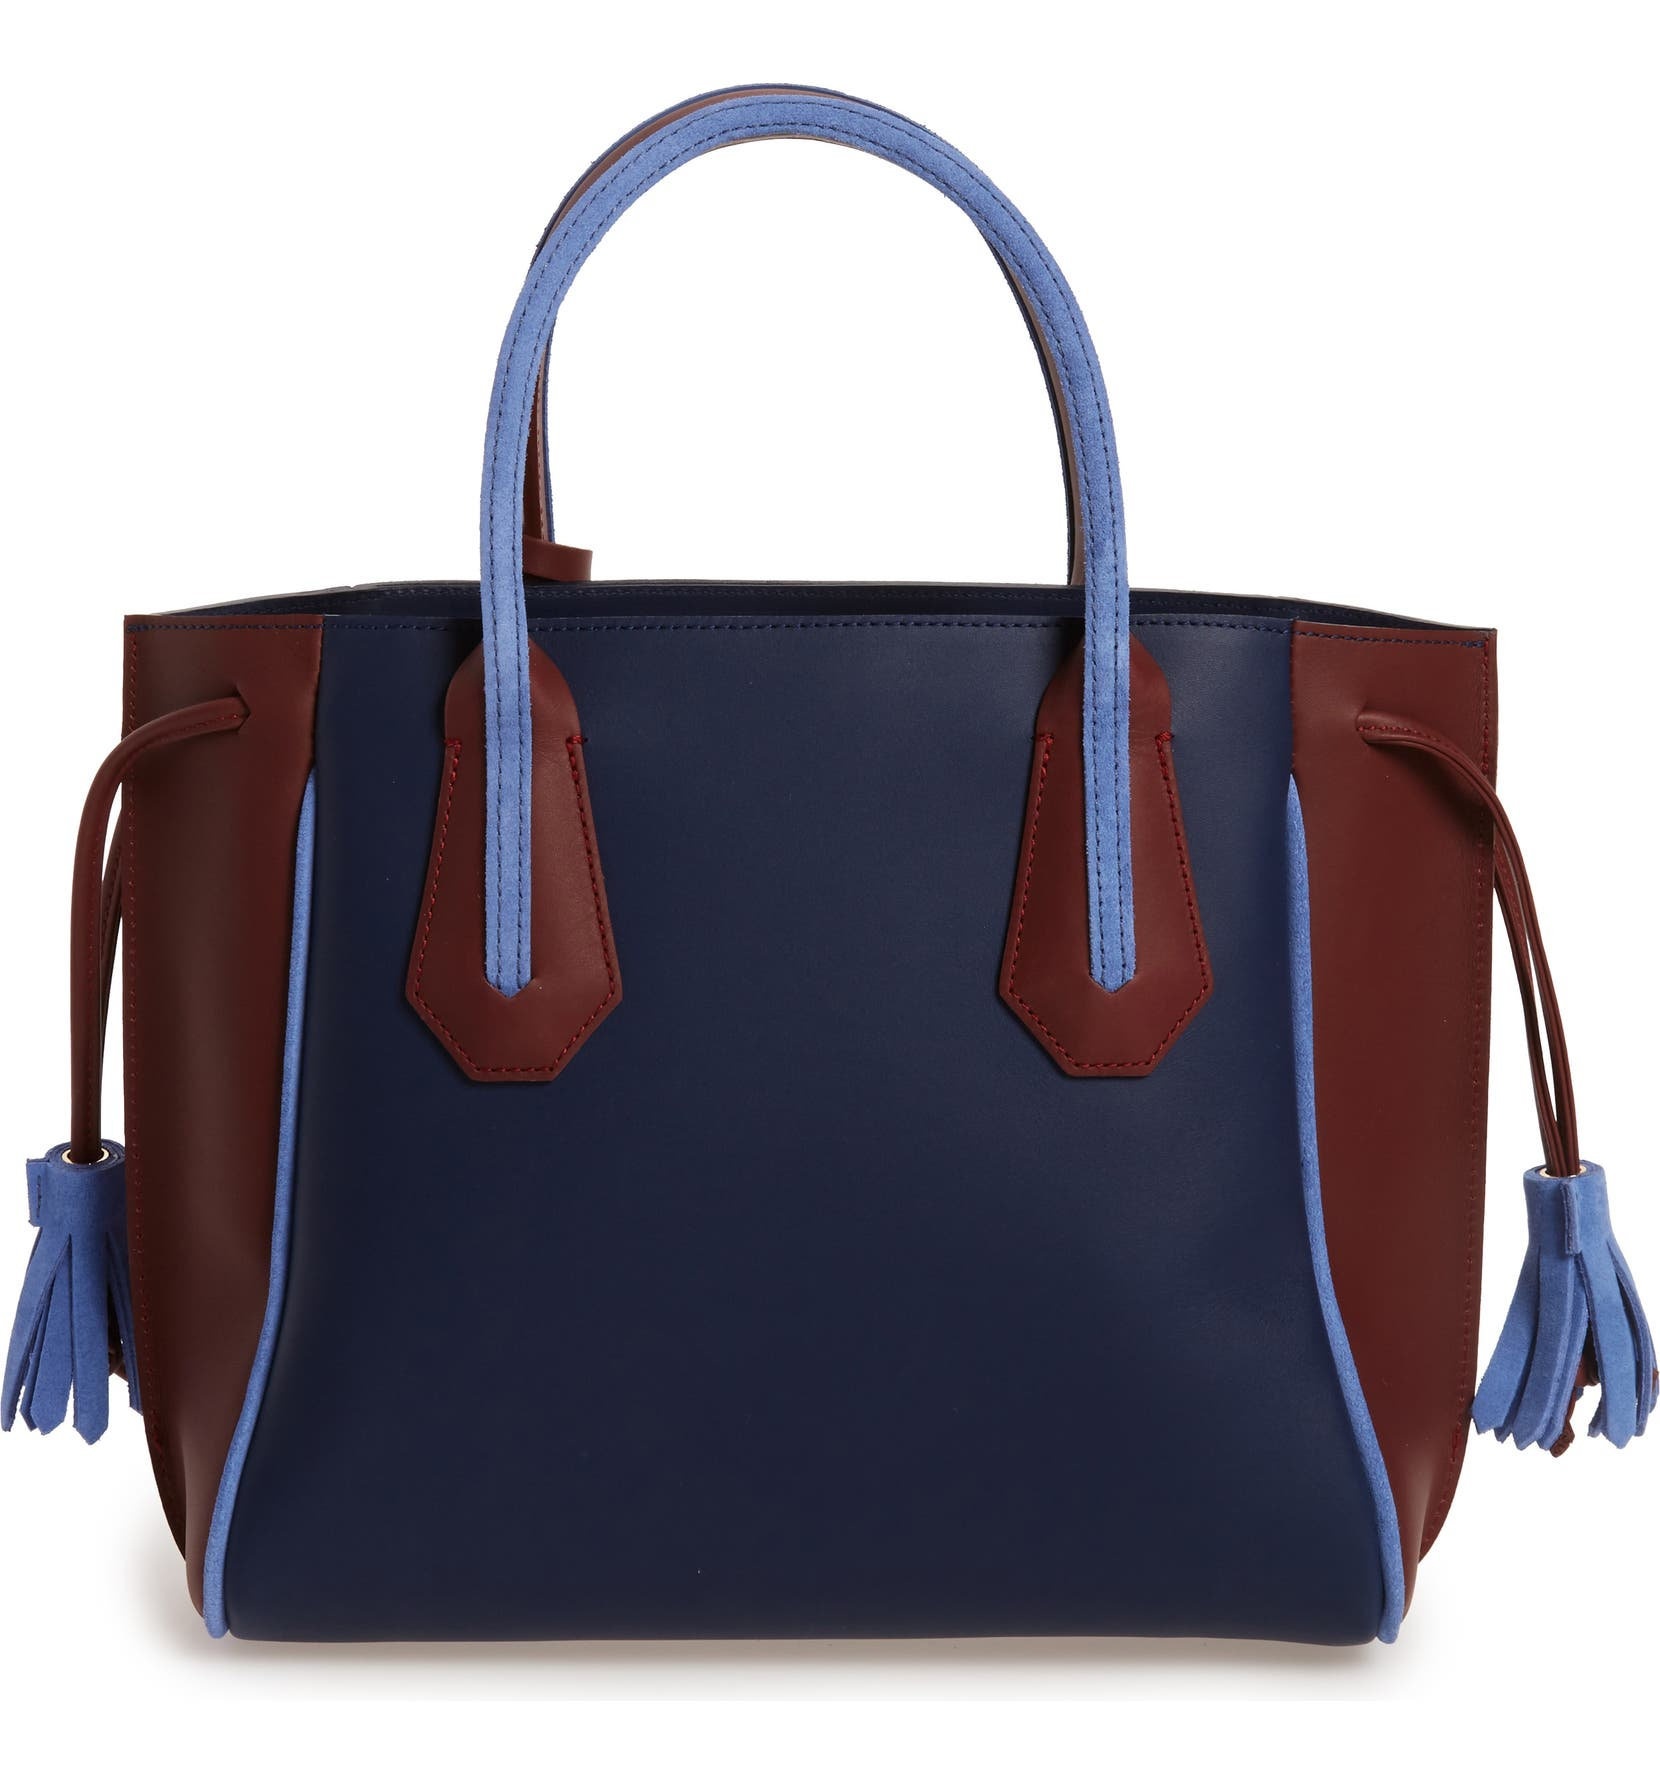 9d63ffb7f91 Longchamp Small Penelope Tri-Color Leather Tote | Nordstrom